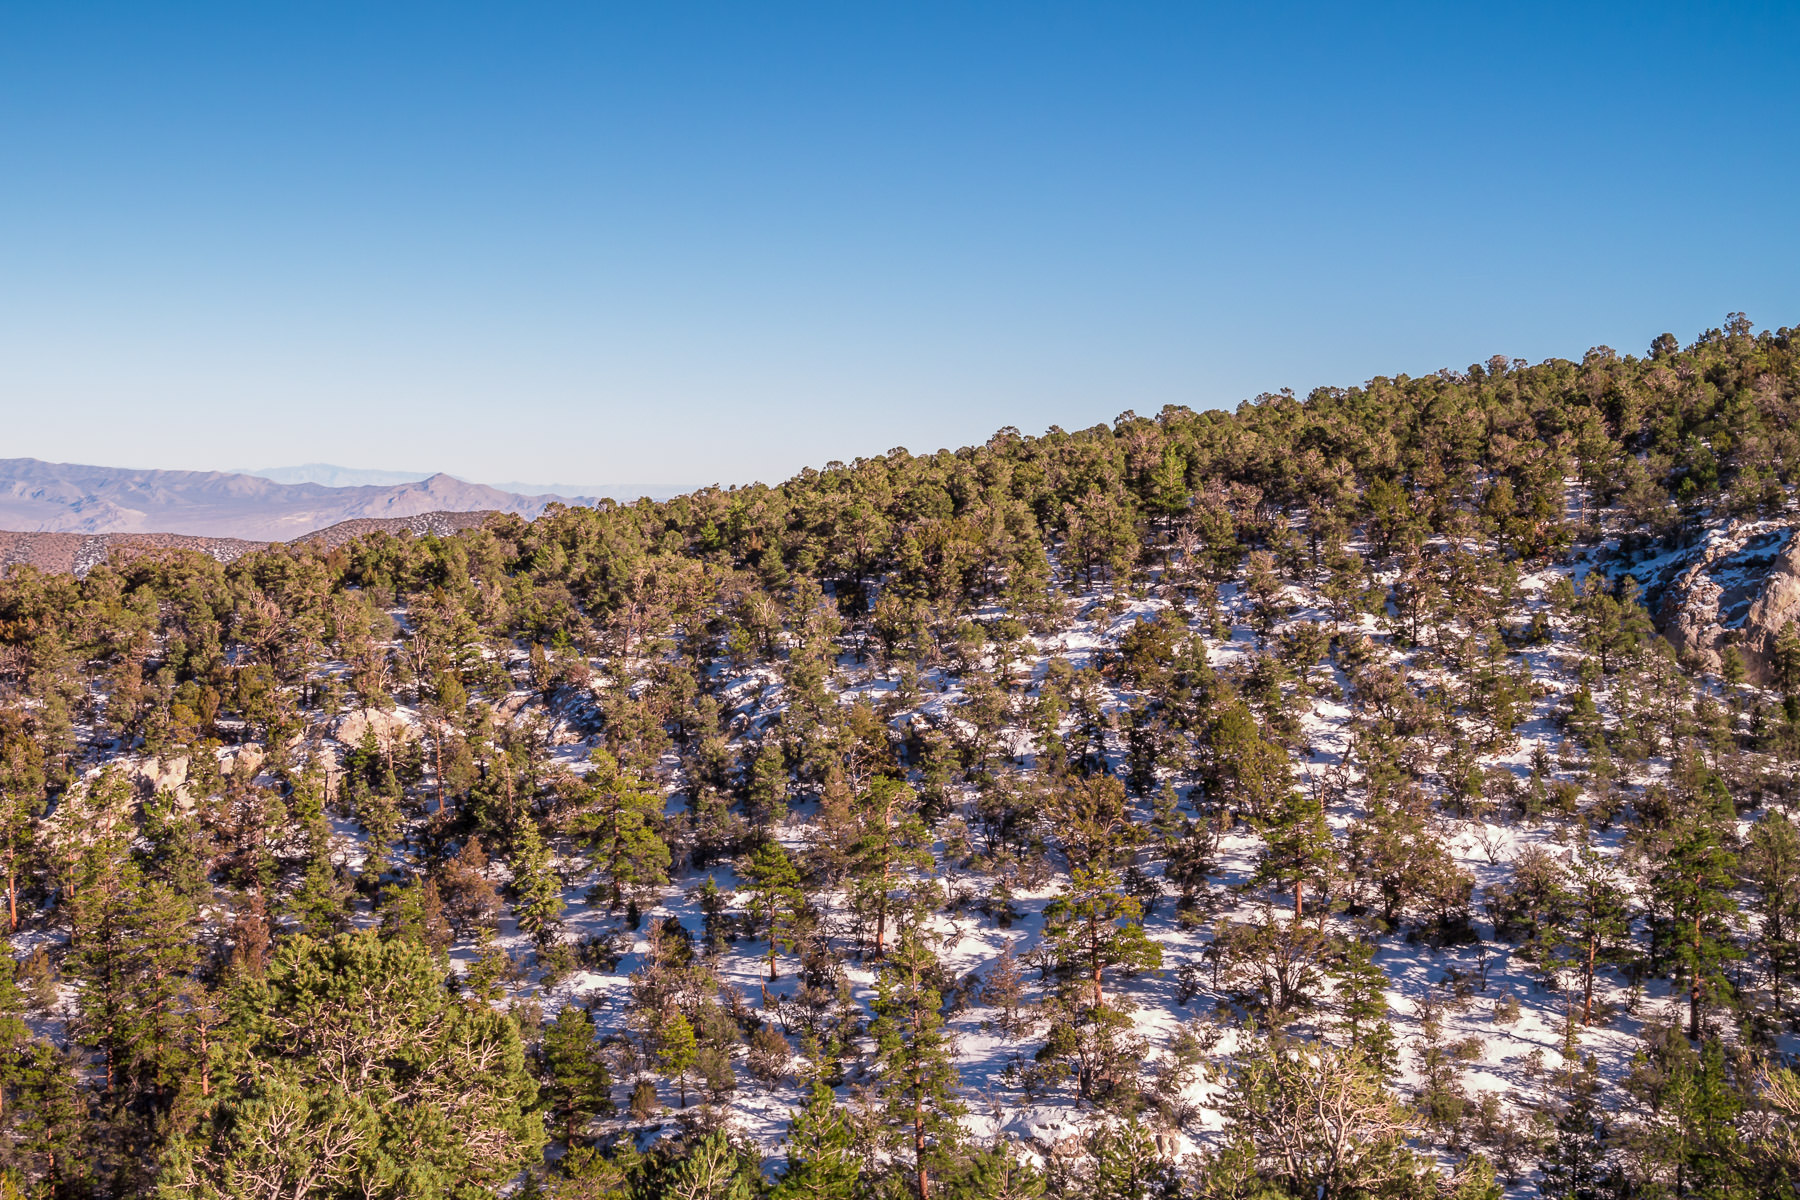 Evergreen trees grow in the wintry foothills of Nevada's Mount Charleston, near Las Vegas.